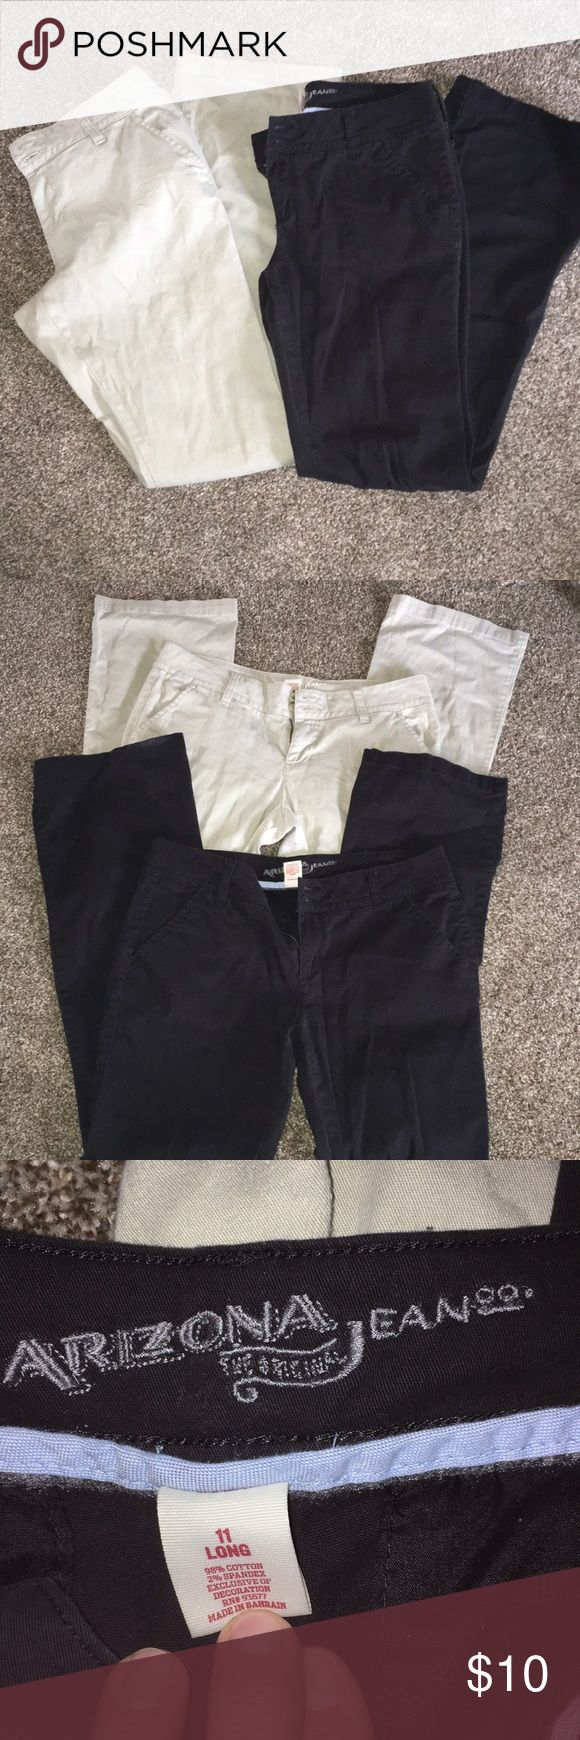 Two pair Arizona khaki style pants black/tan used Two pair size 11 long Arizona brand 97% cotton 3% spandex uniform style khaki style casual pants. They are well worn and have some pilling between the legs but they are still in good used shape and perfect for that job that requires these kind of pants. My daughter had to wear them for a summer internship at the Indianapolis 500 so they were only worn for one summer but they were worn and washed a lot so they are a bit faded but that's why…